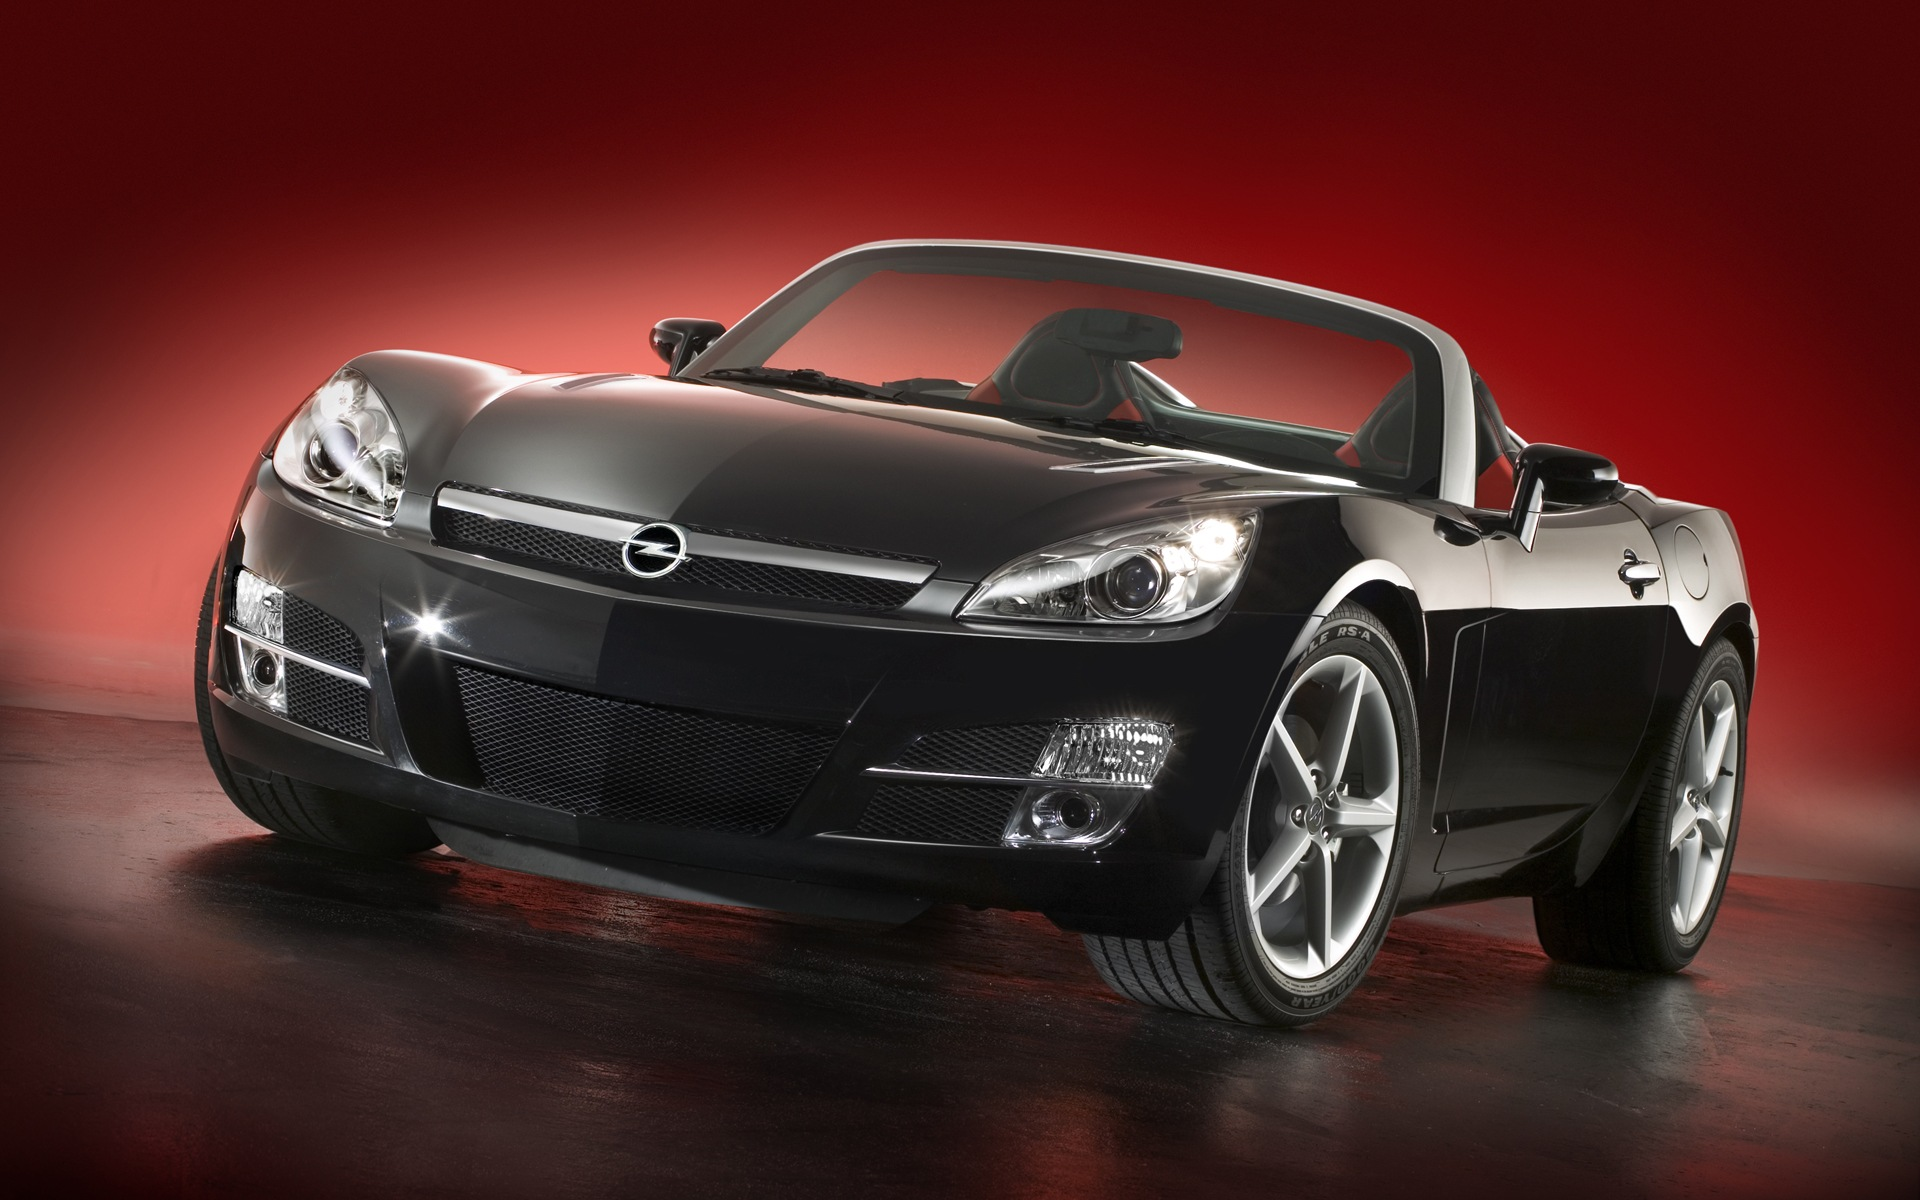 opel gt turbo wallpapers opel gt turbo stock photos. Black Bedroom Furniture Sets. Home Design Ideas